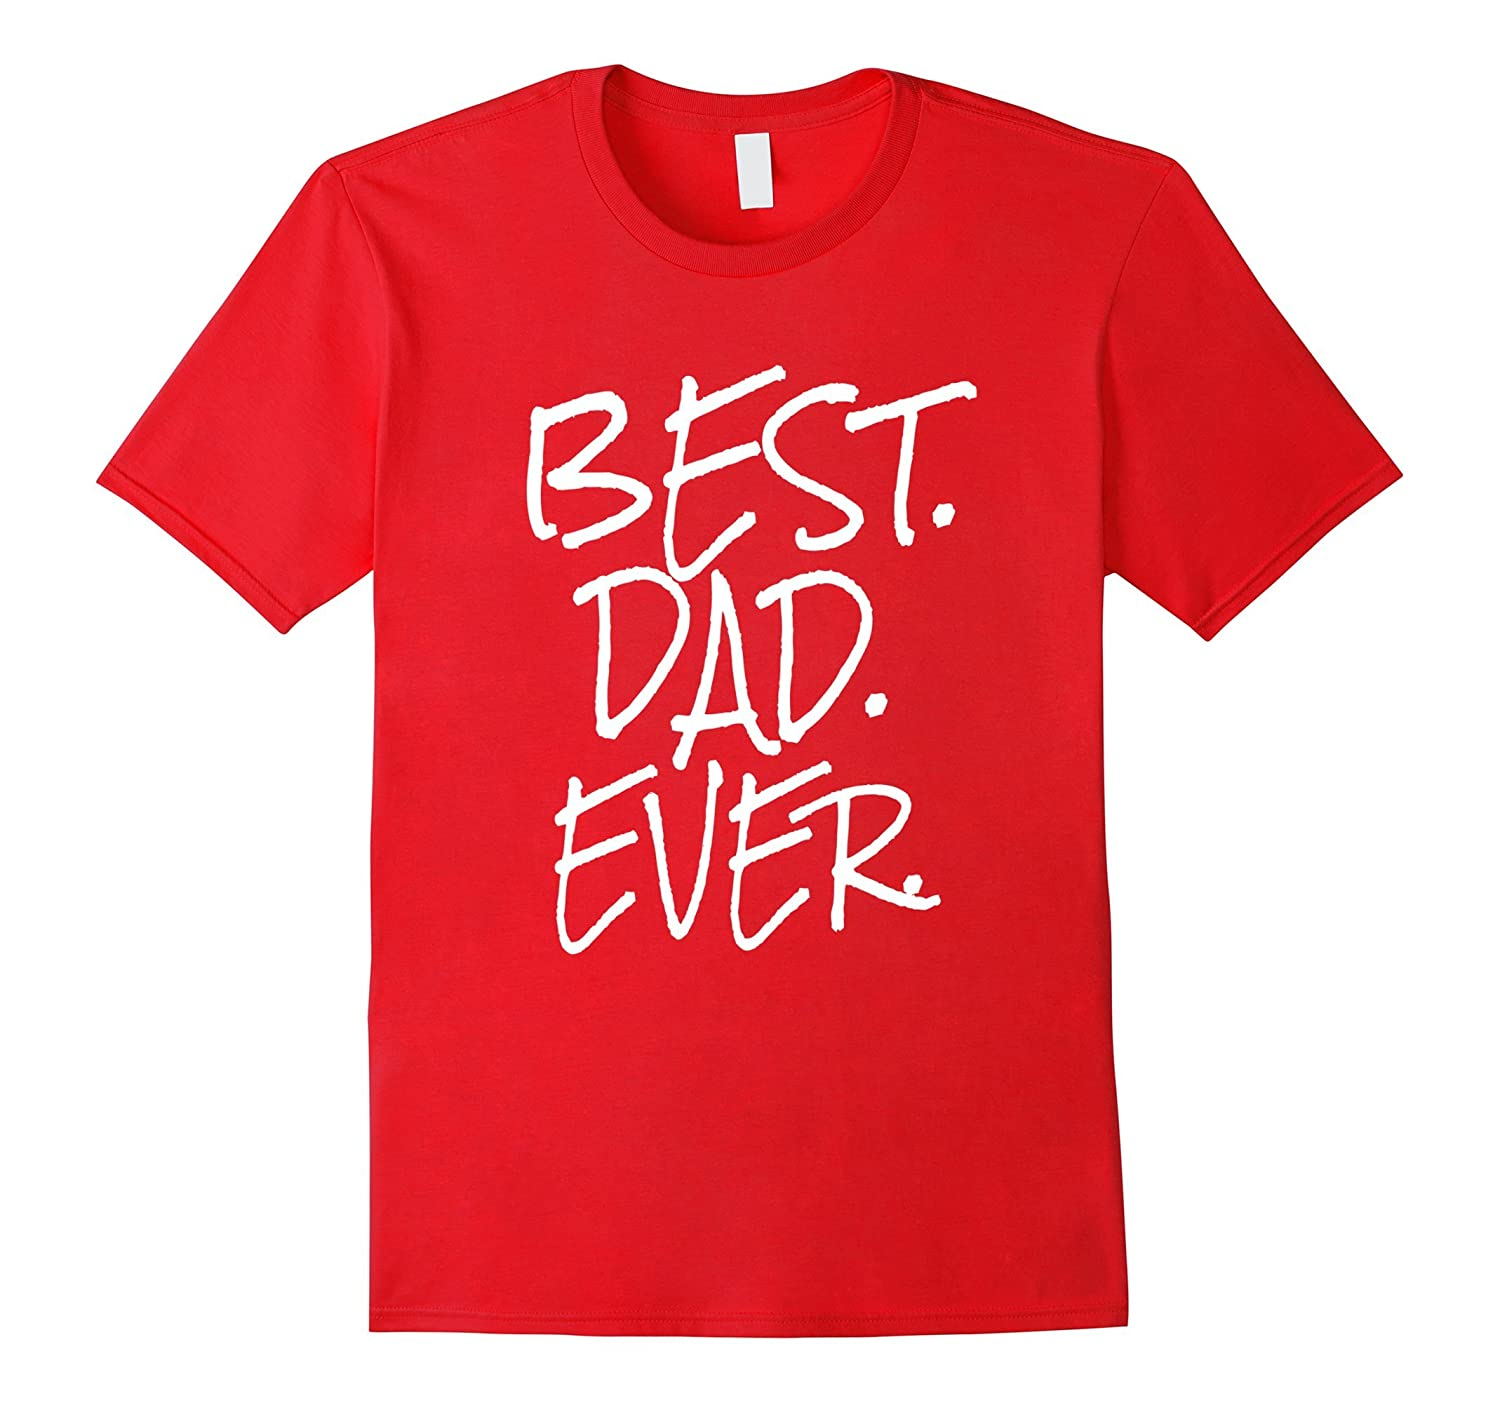 Best Dad Ever Funny Fathers Day T Shirt Best Holiday Gift-Vaci